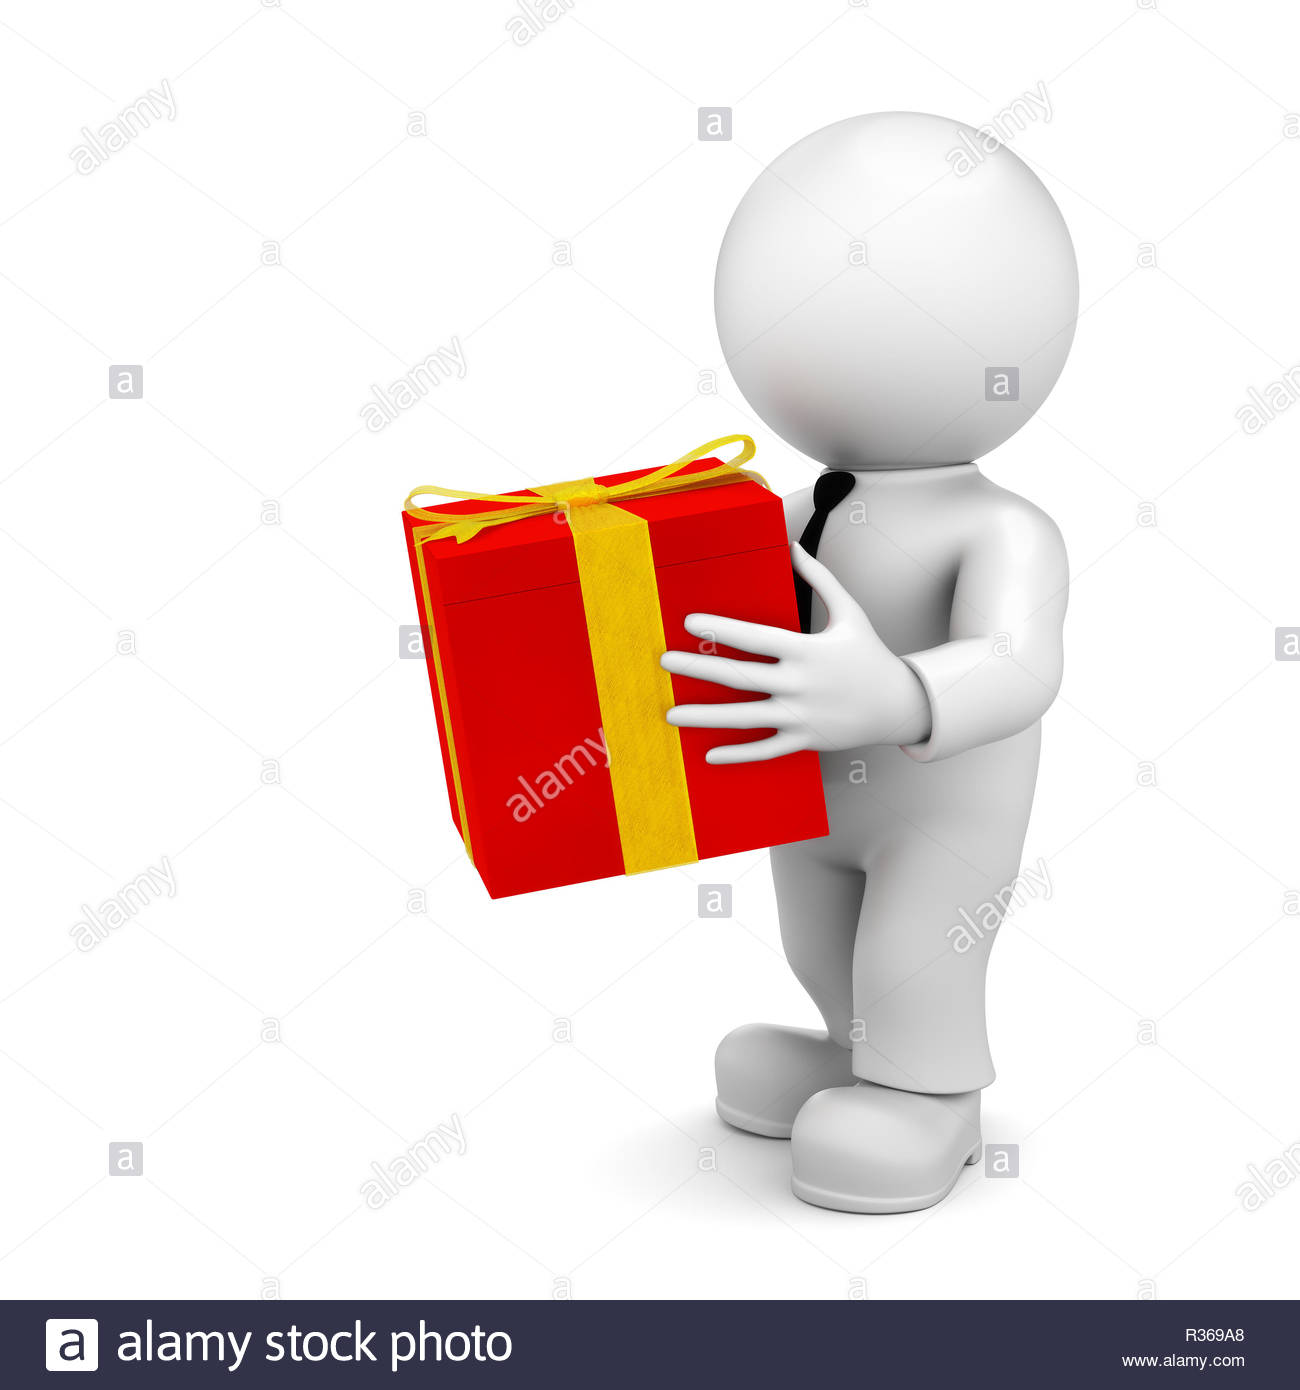 received a present - Stock Image